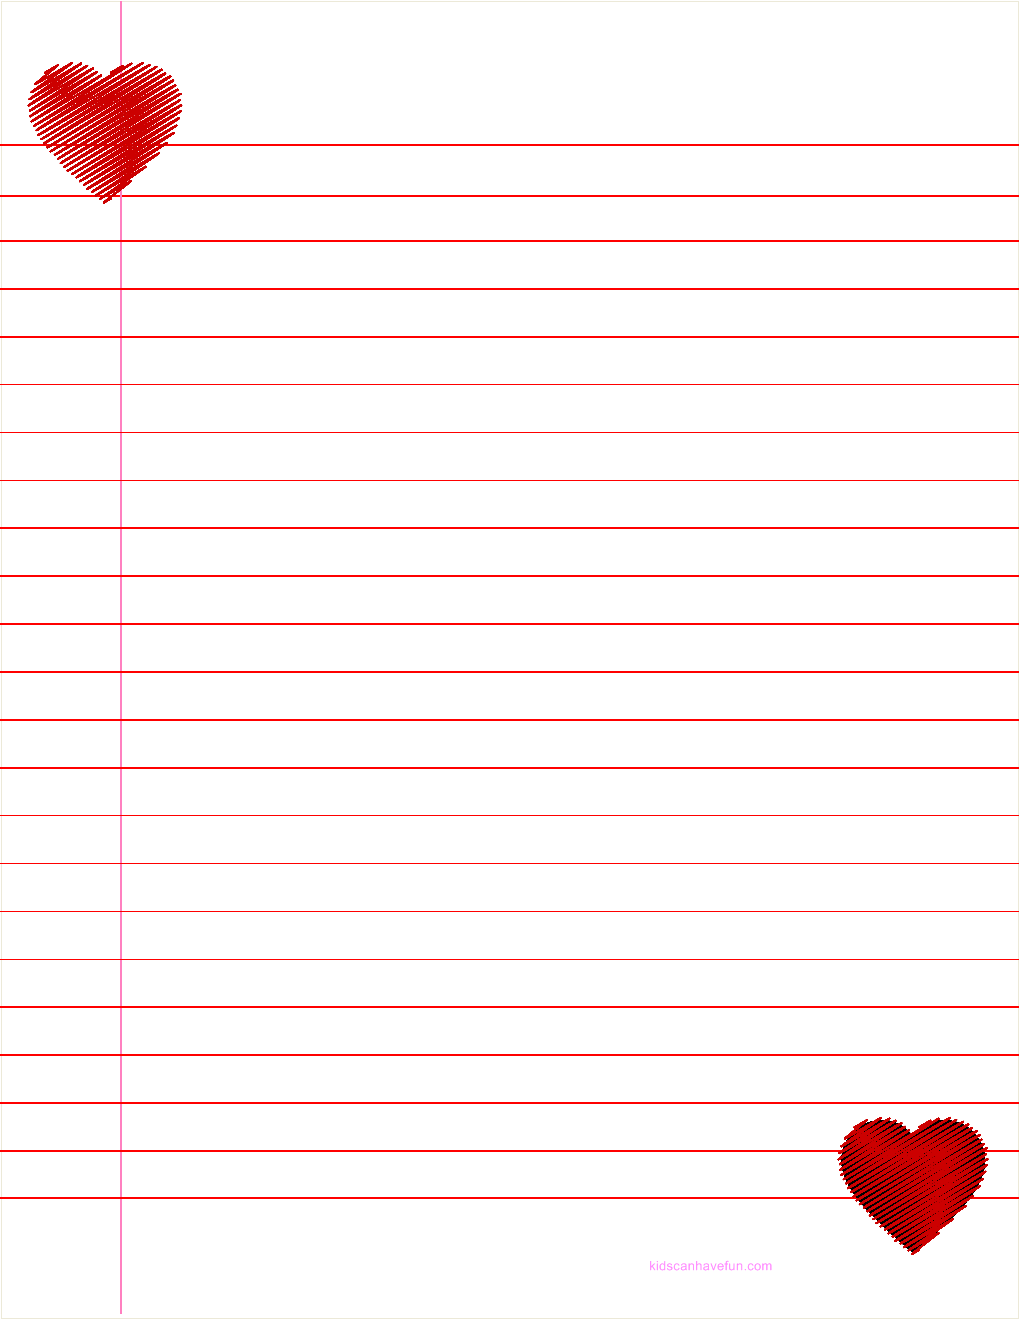 9 Images of Free Printable Valentine's Writing Paper